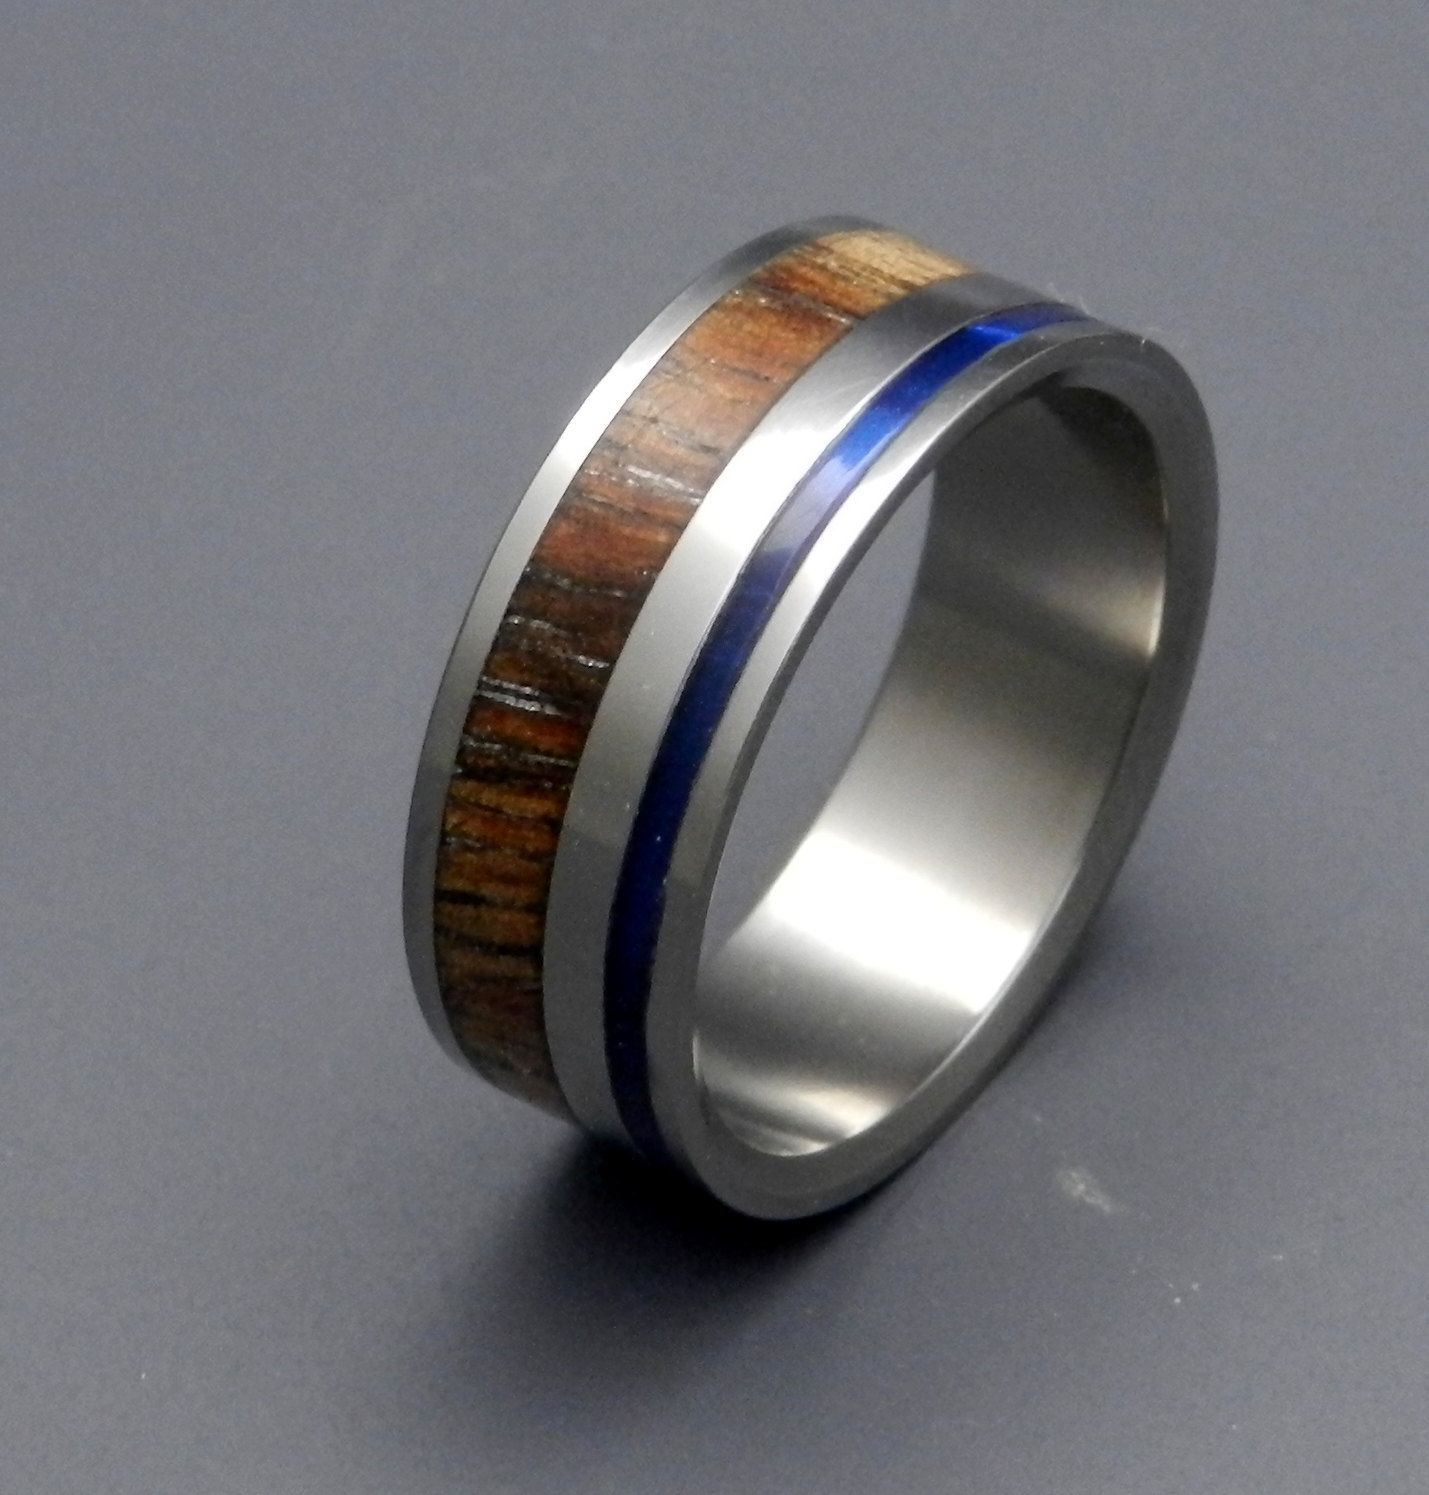 Starry Cove Wooden Wedding Rings 260 00 Via Etsy